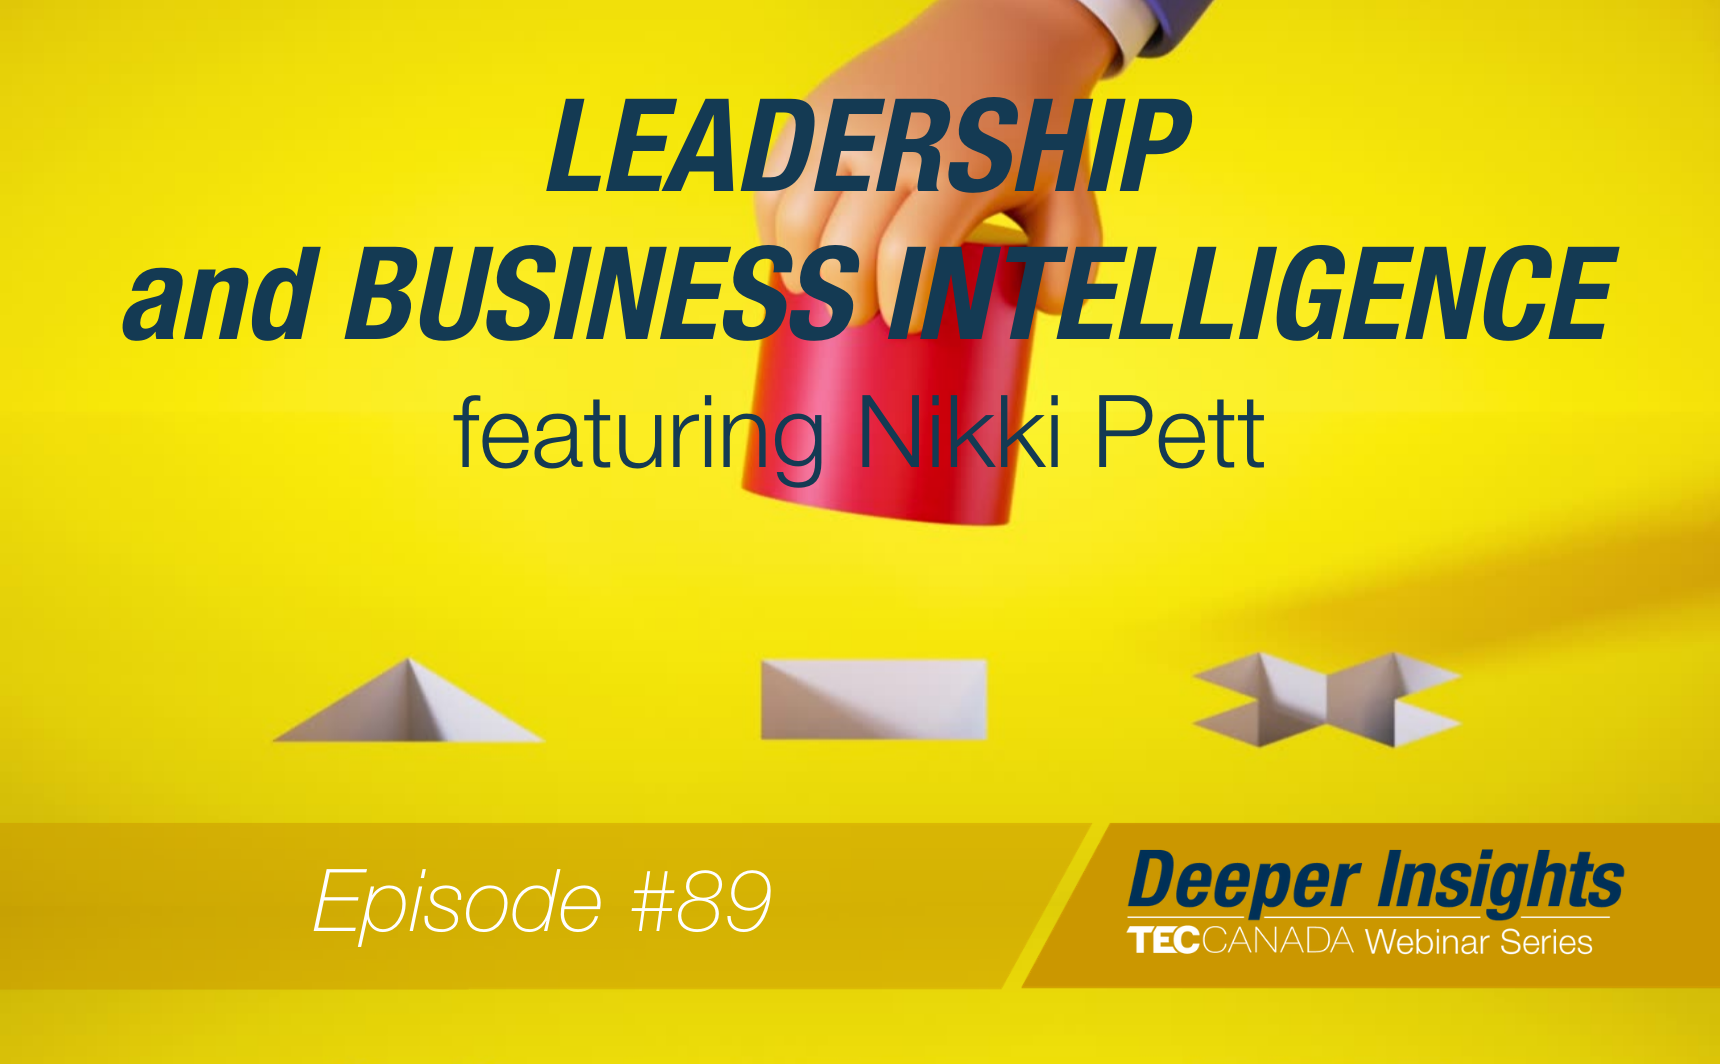 Leadership and Business Intelligence